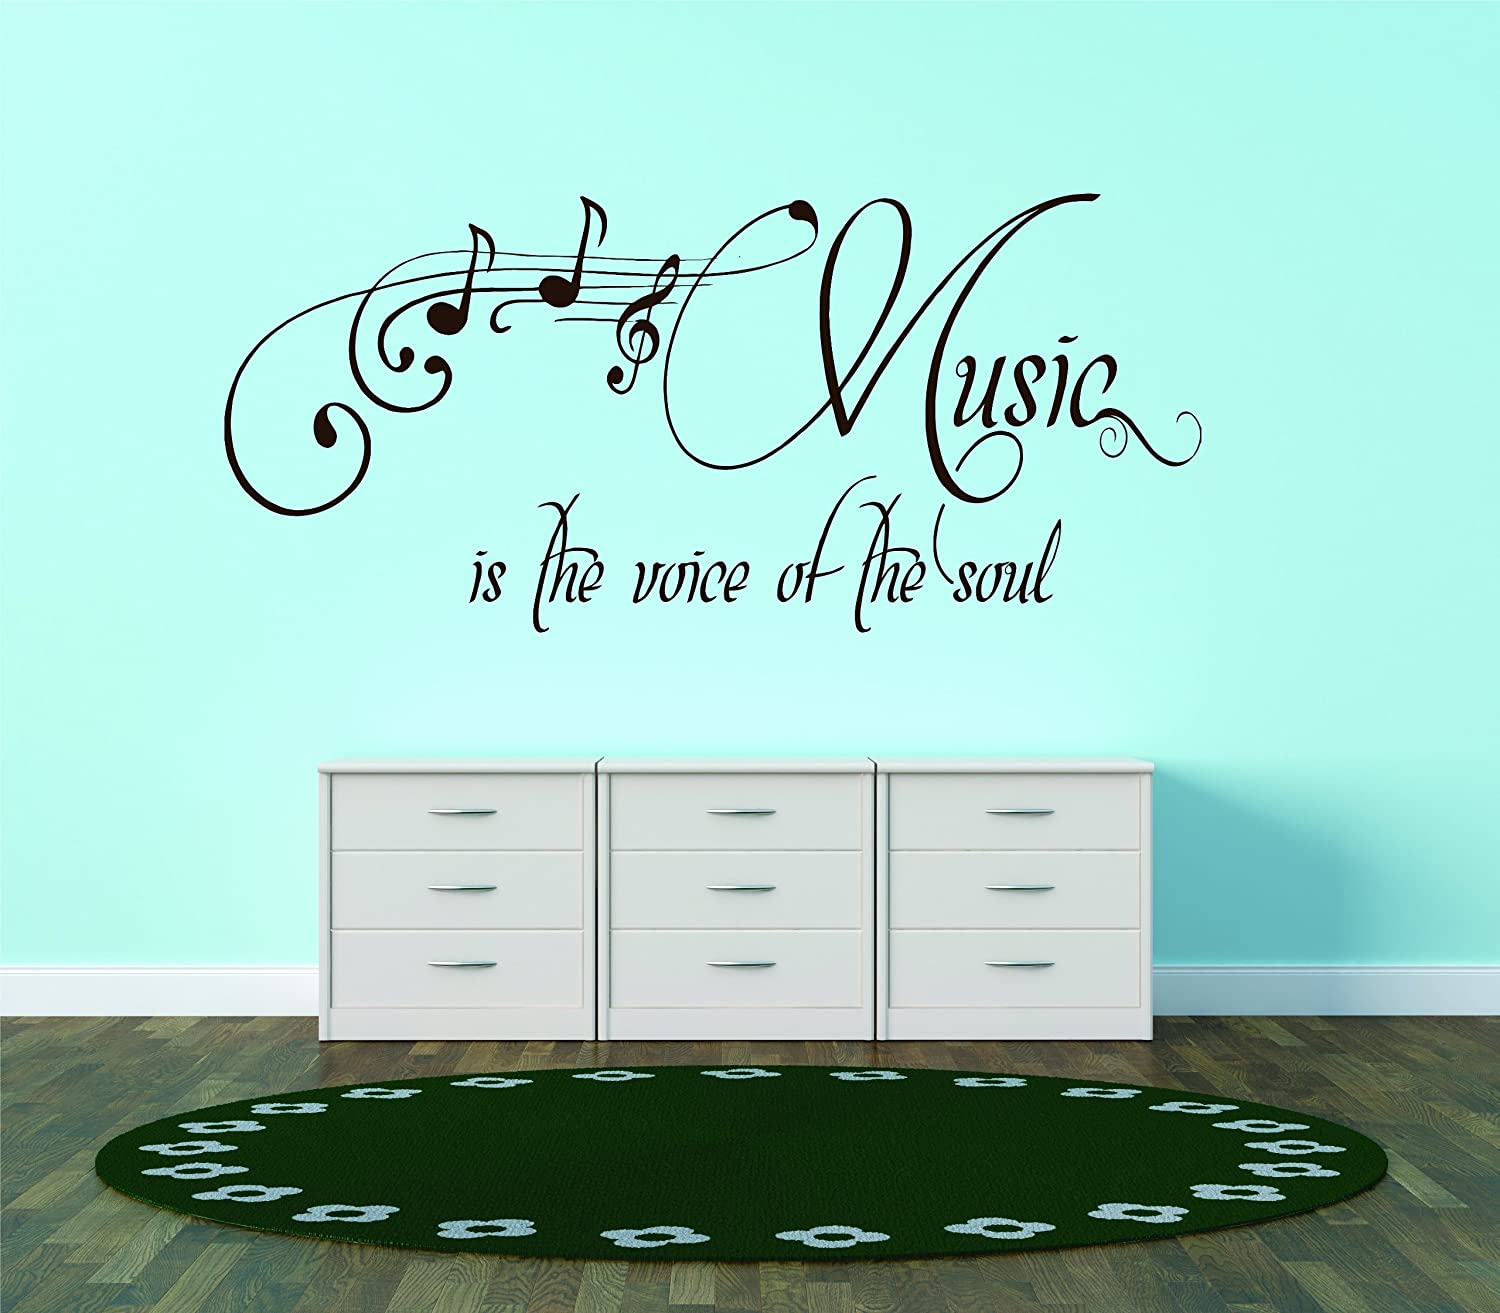 Design with Vinyl Music Is The Voice Of The Soul Picture Art - Living Room - Peel And Stick Sticker - Vinyl Wall Decal, 10-Inchx30-Inch, Black Design with Vinyl - CA Design 451 - Black